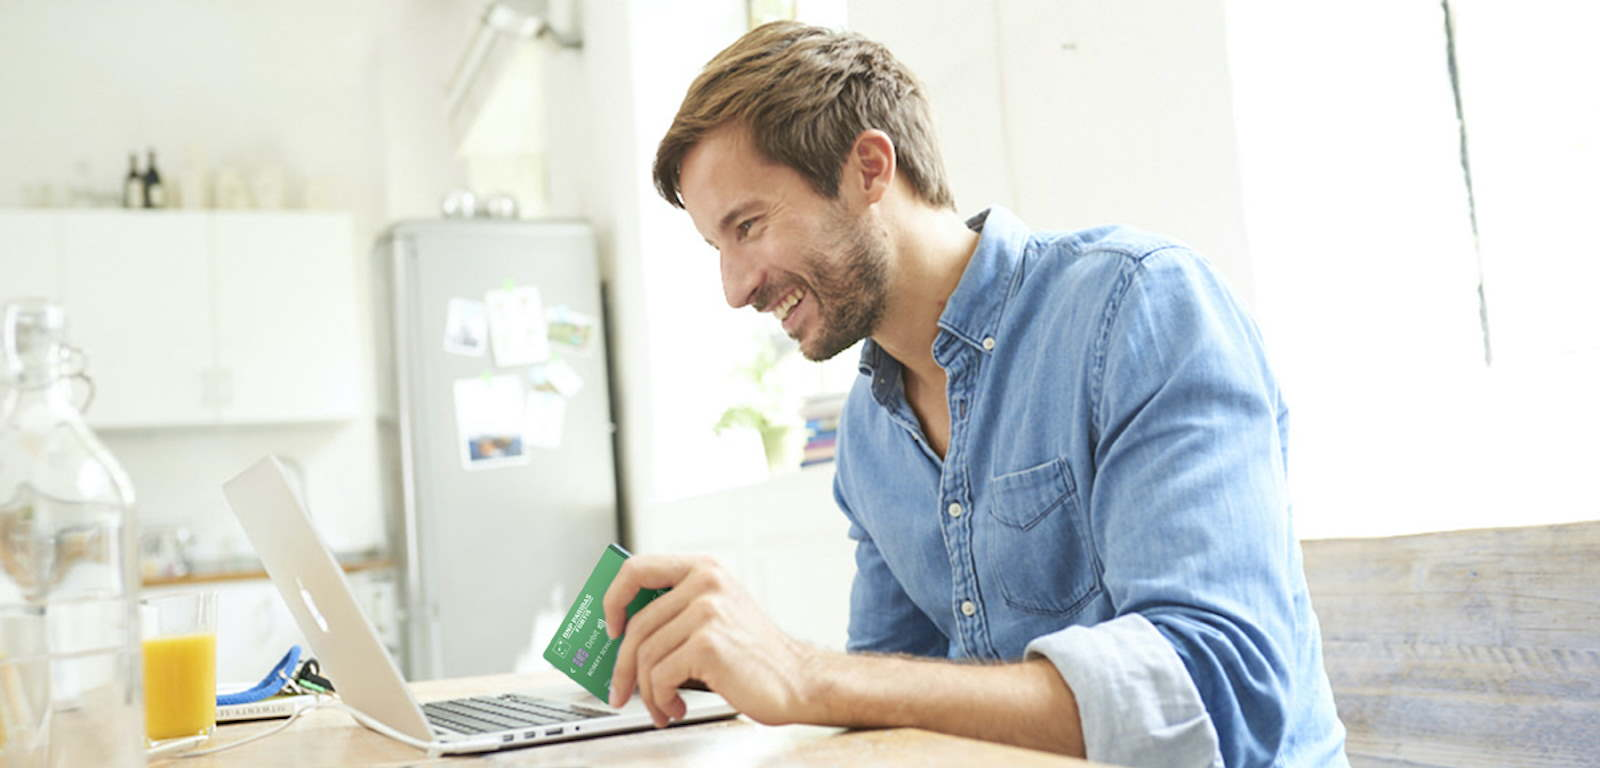 Man paying with card on laptop